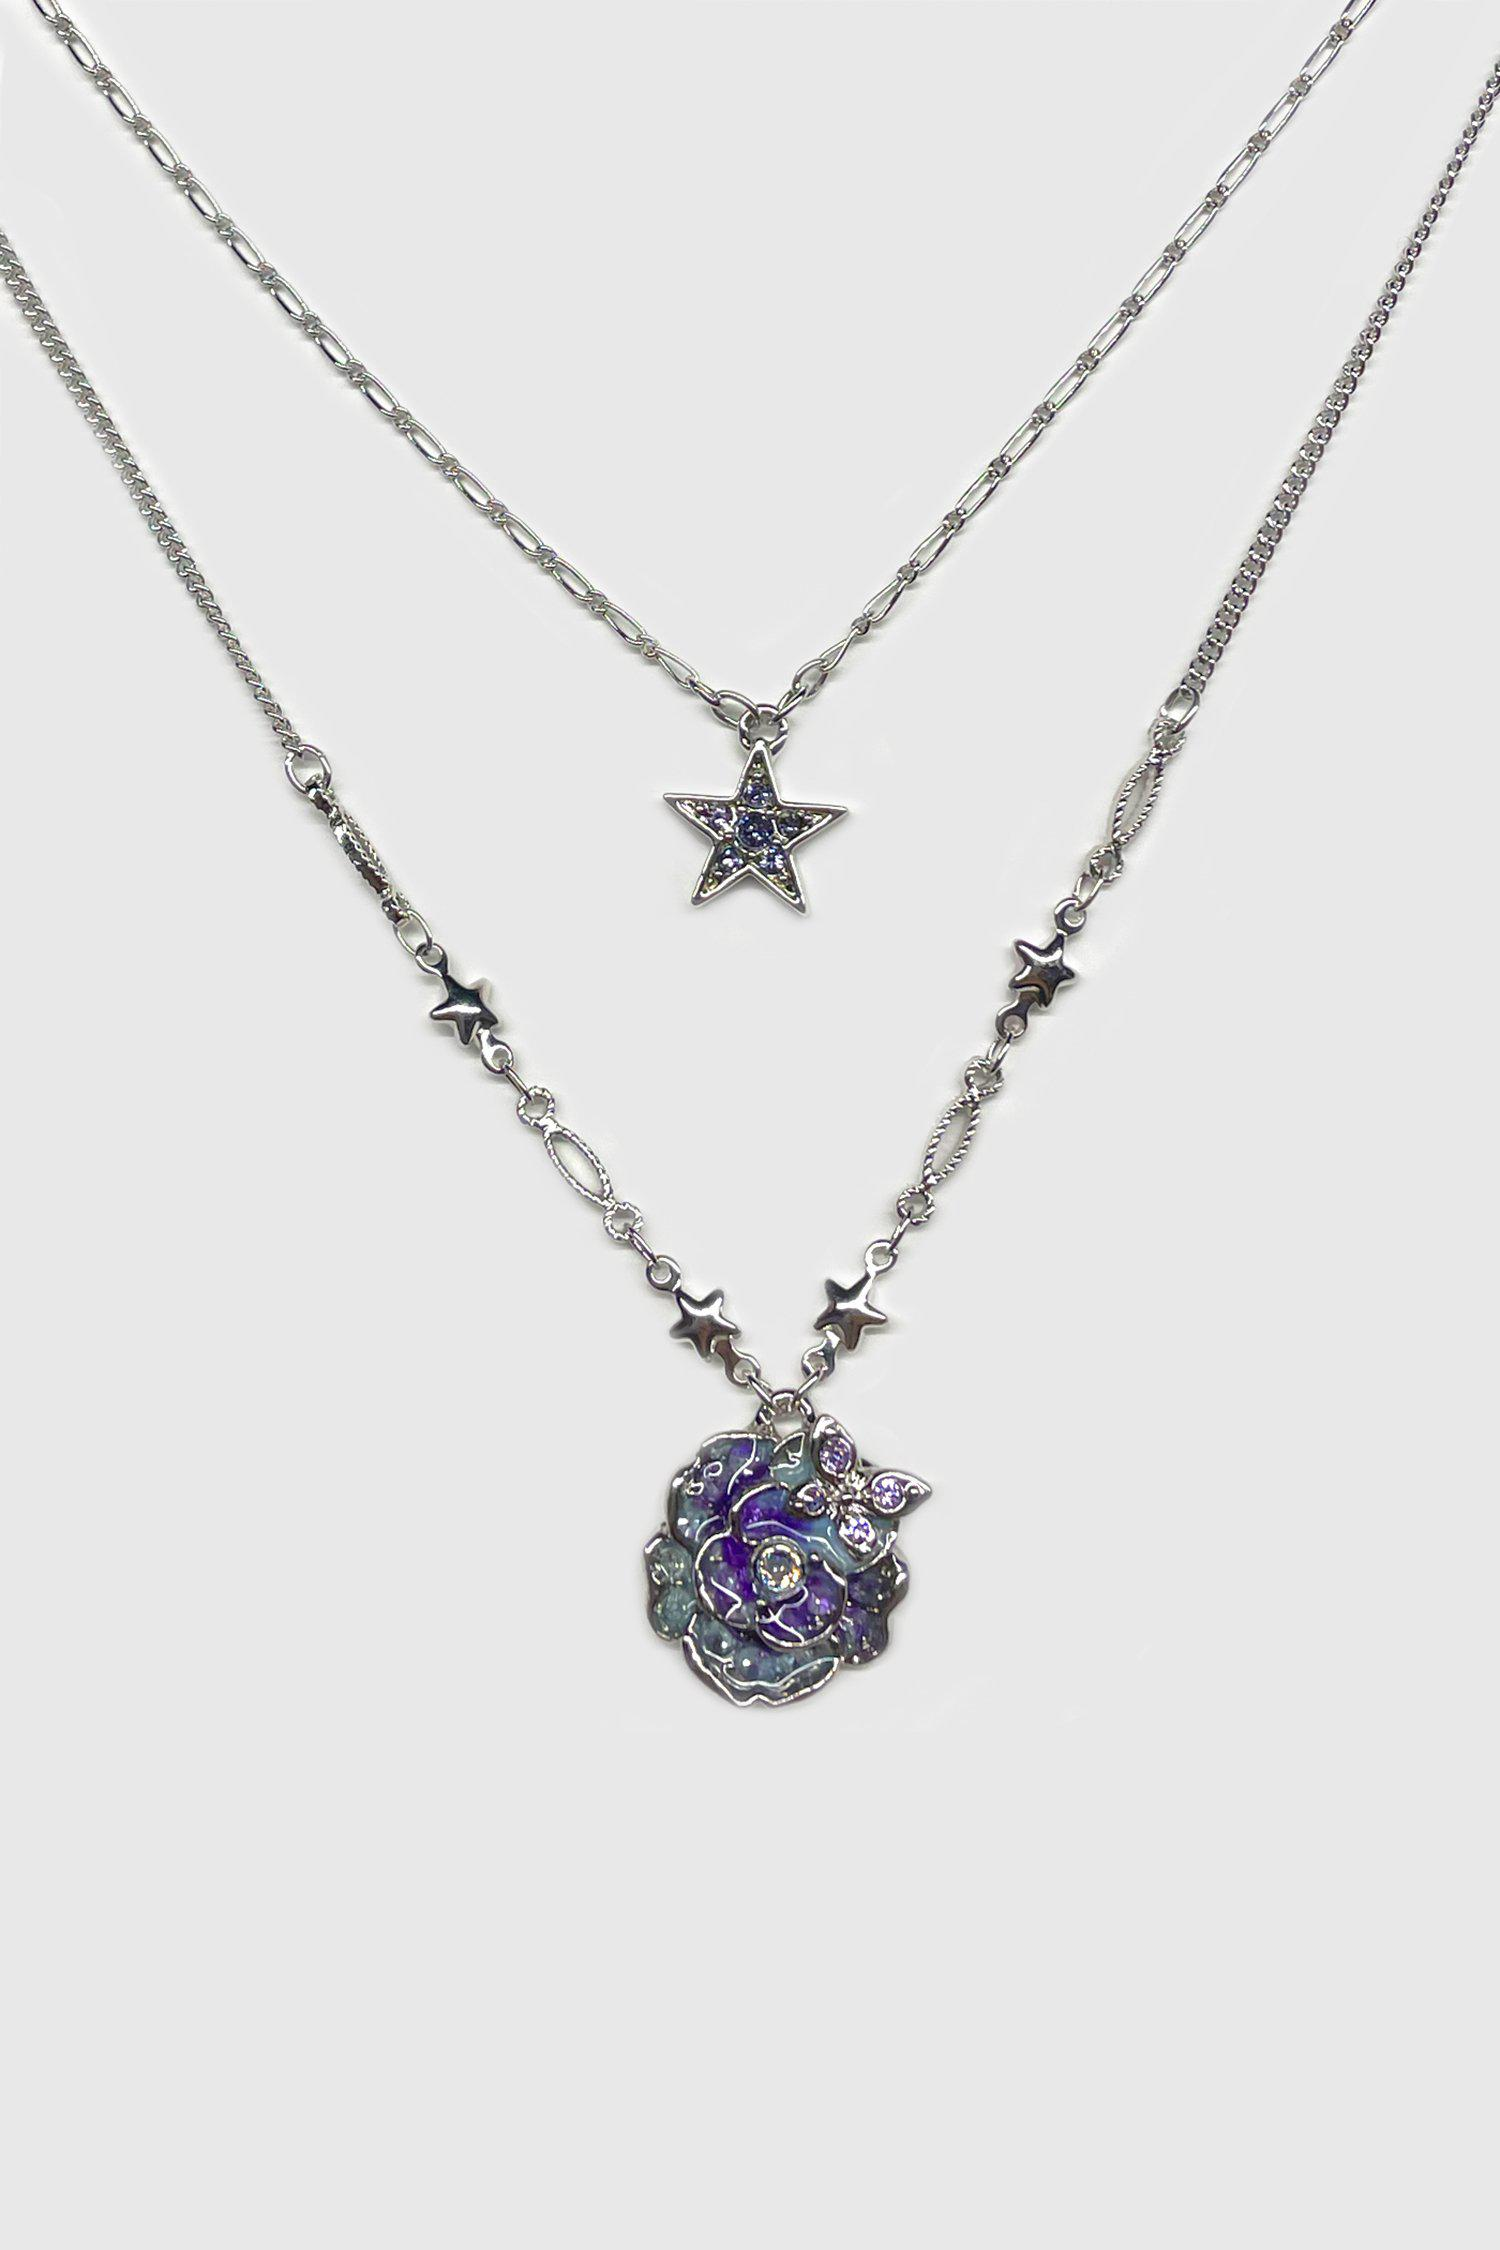 Rose and Star Charm Necklace Set